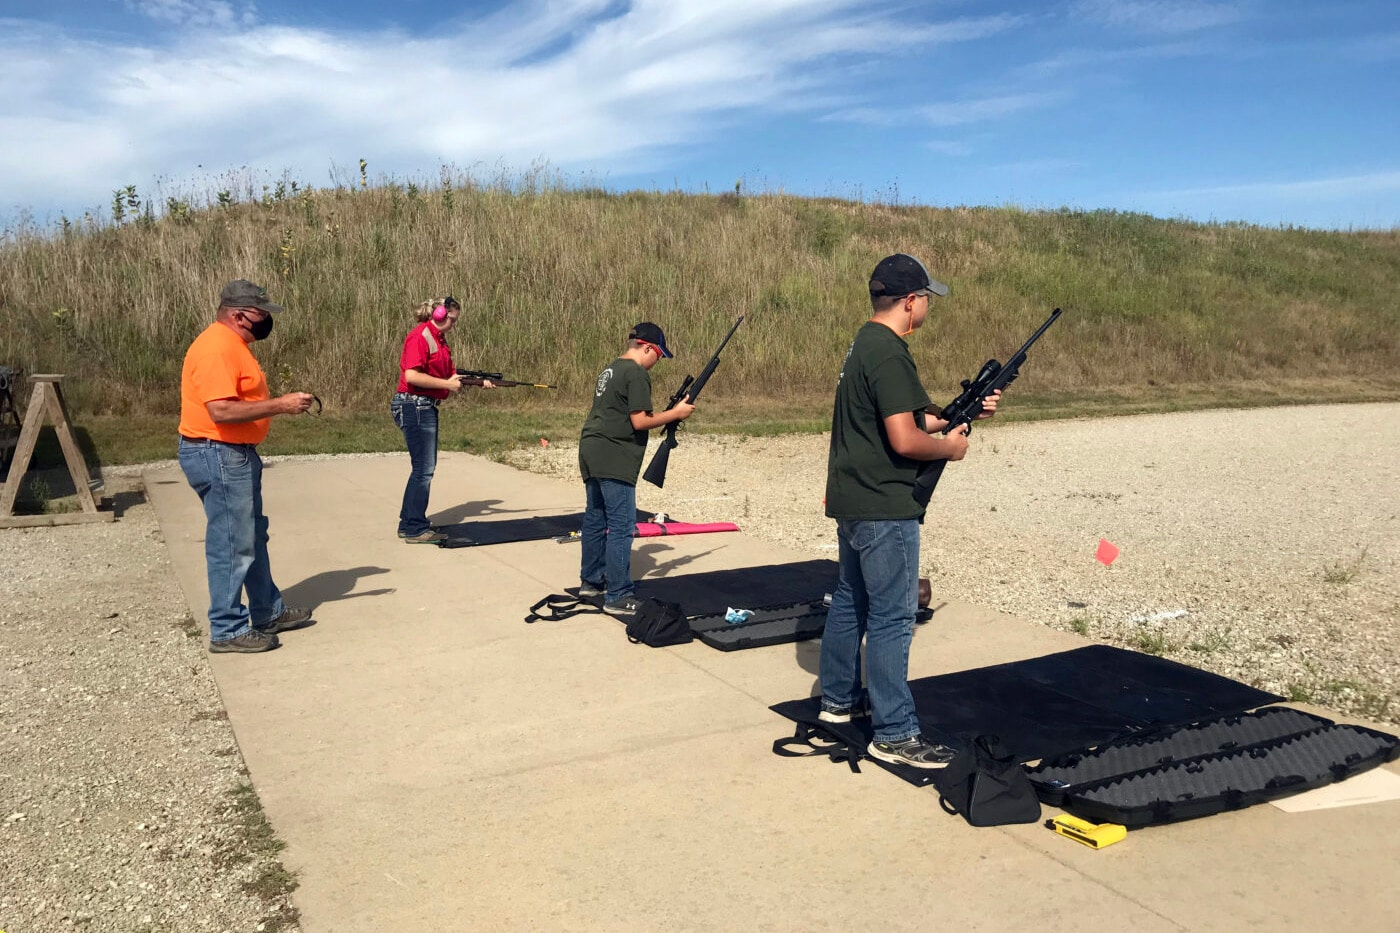 4-H firearms instructor with teens on the range